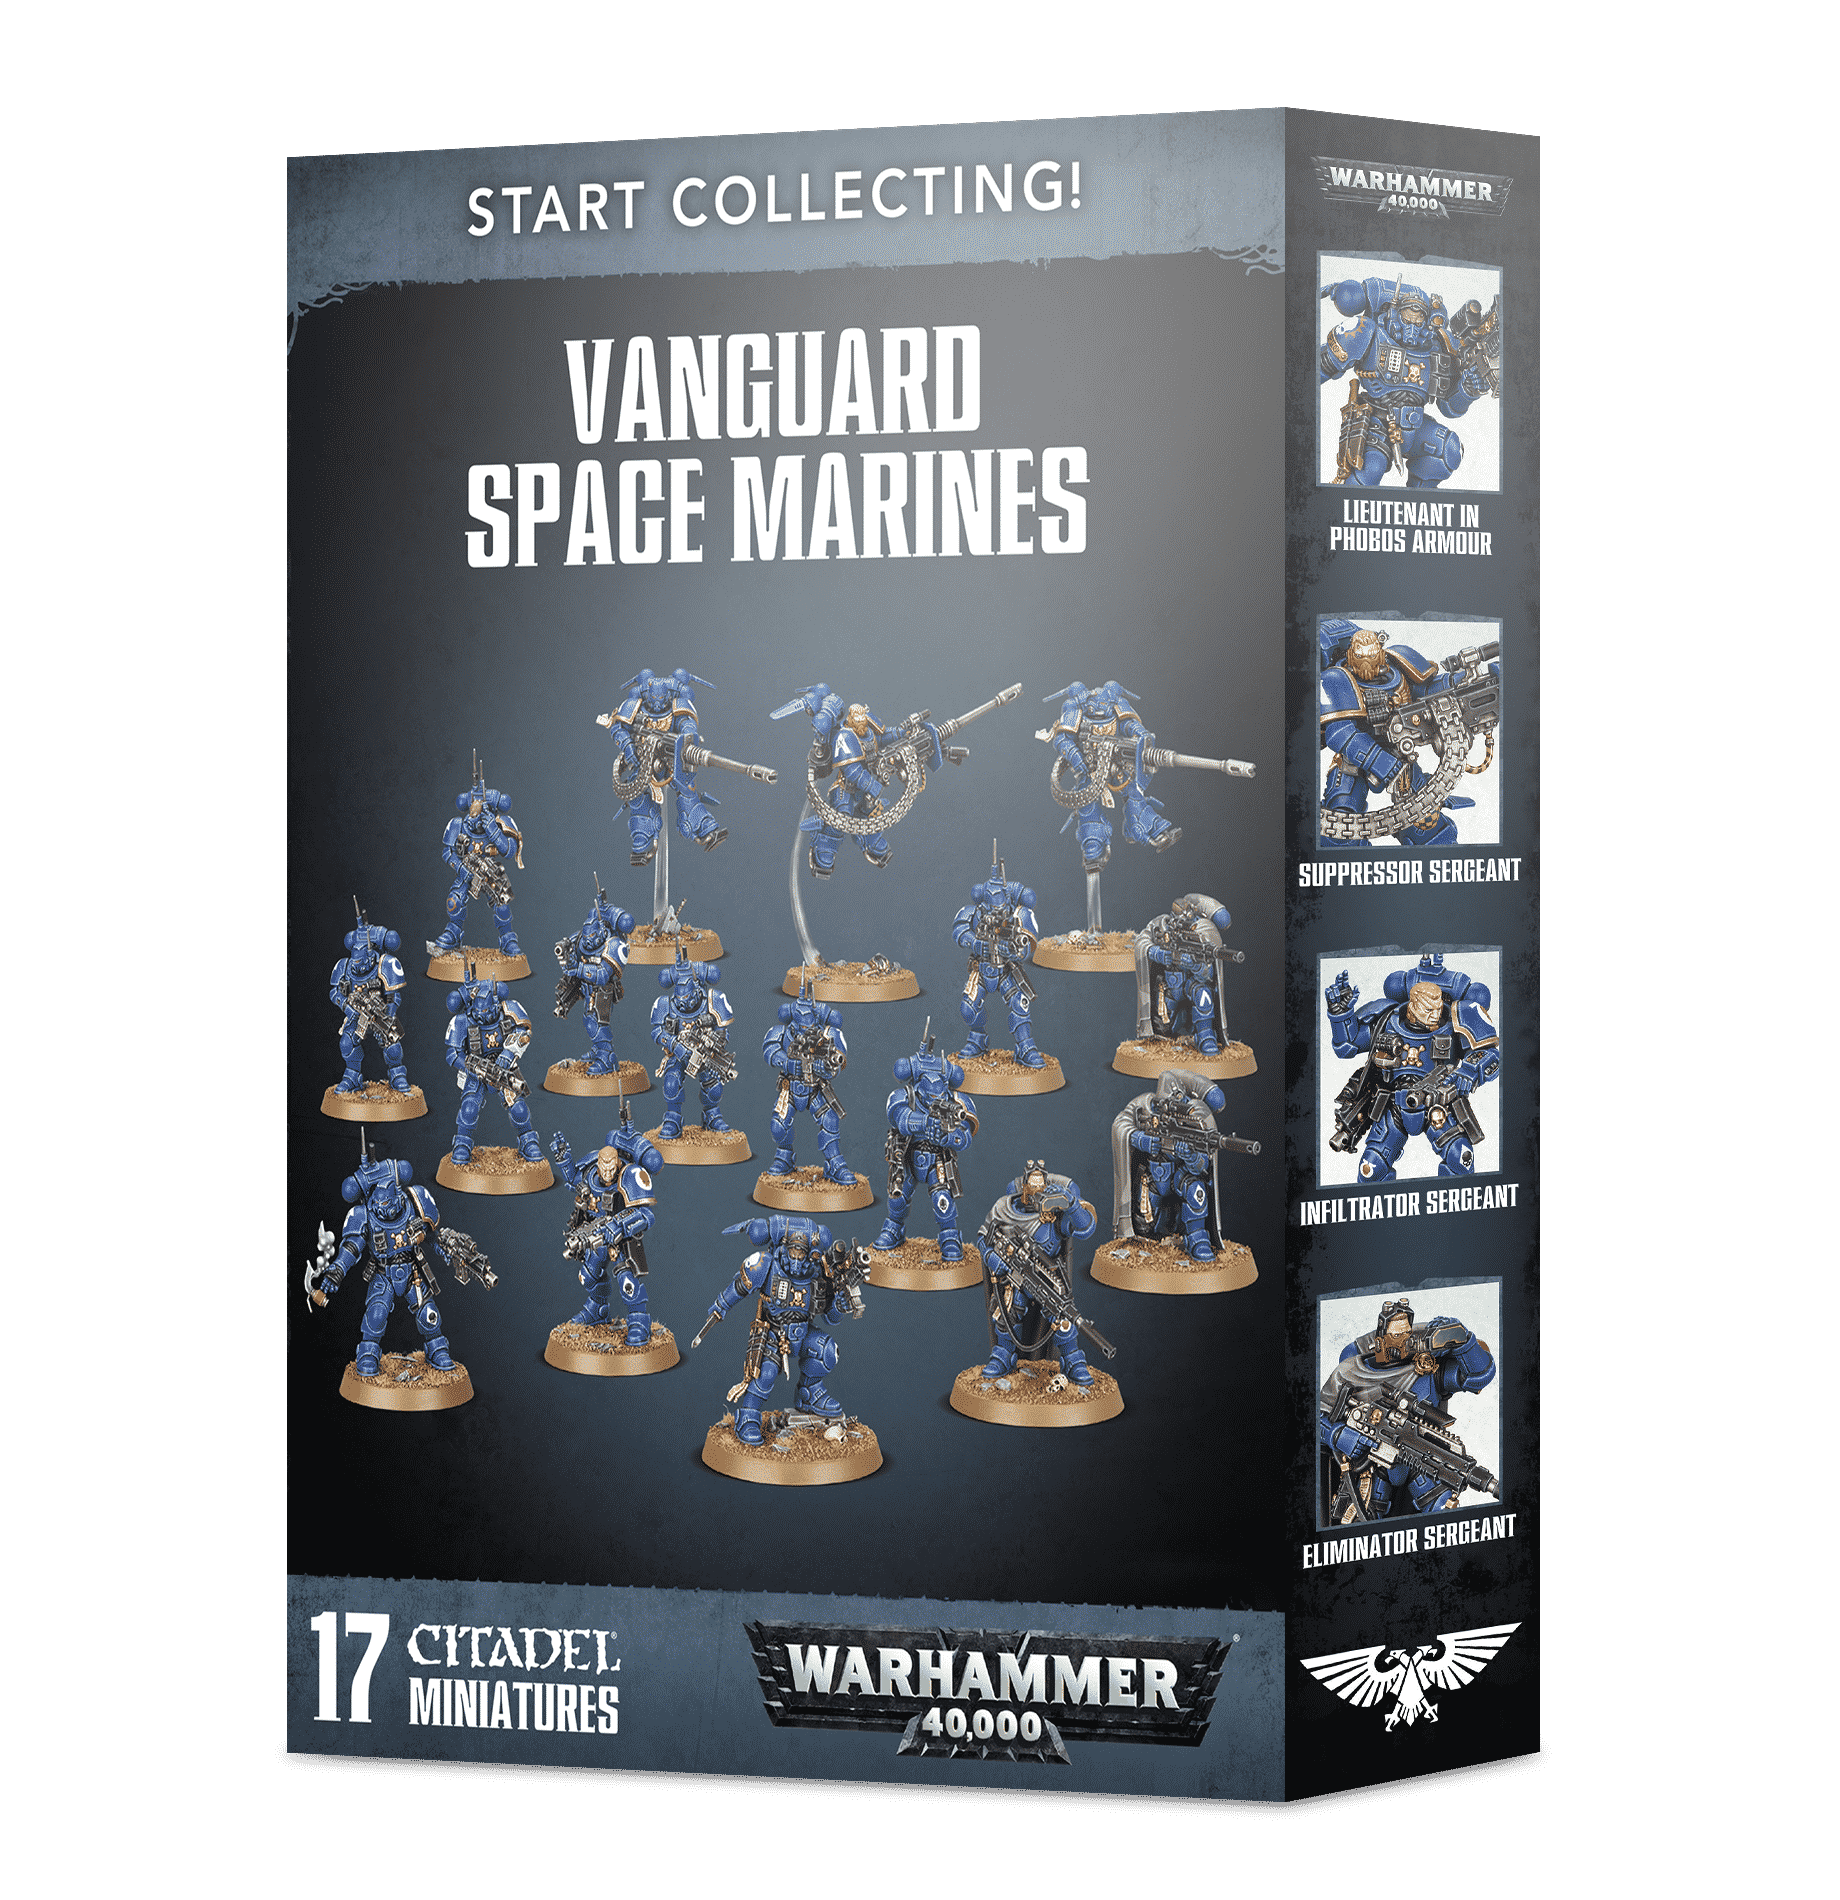 Vanguard Space Marines - Start Collecting!